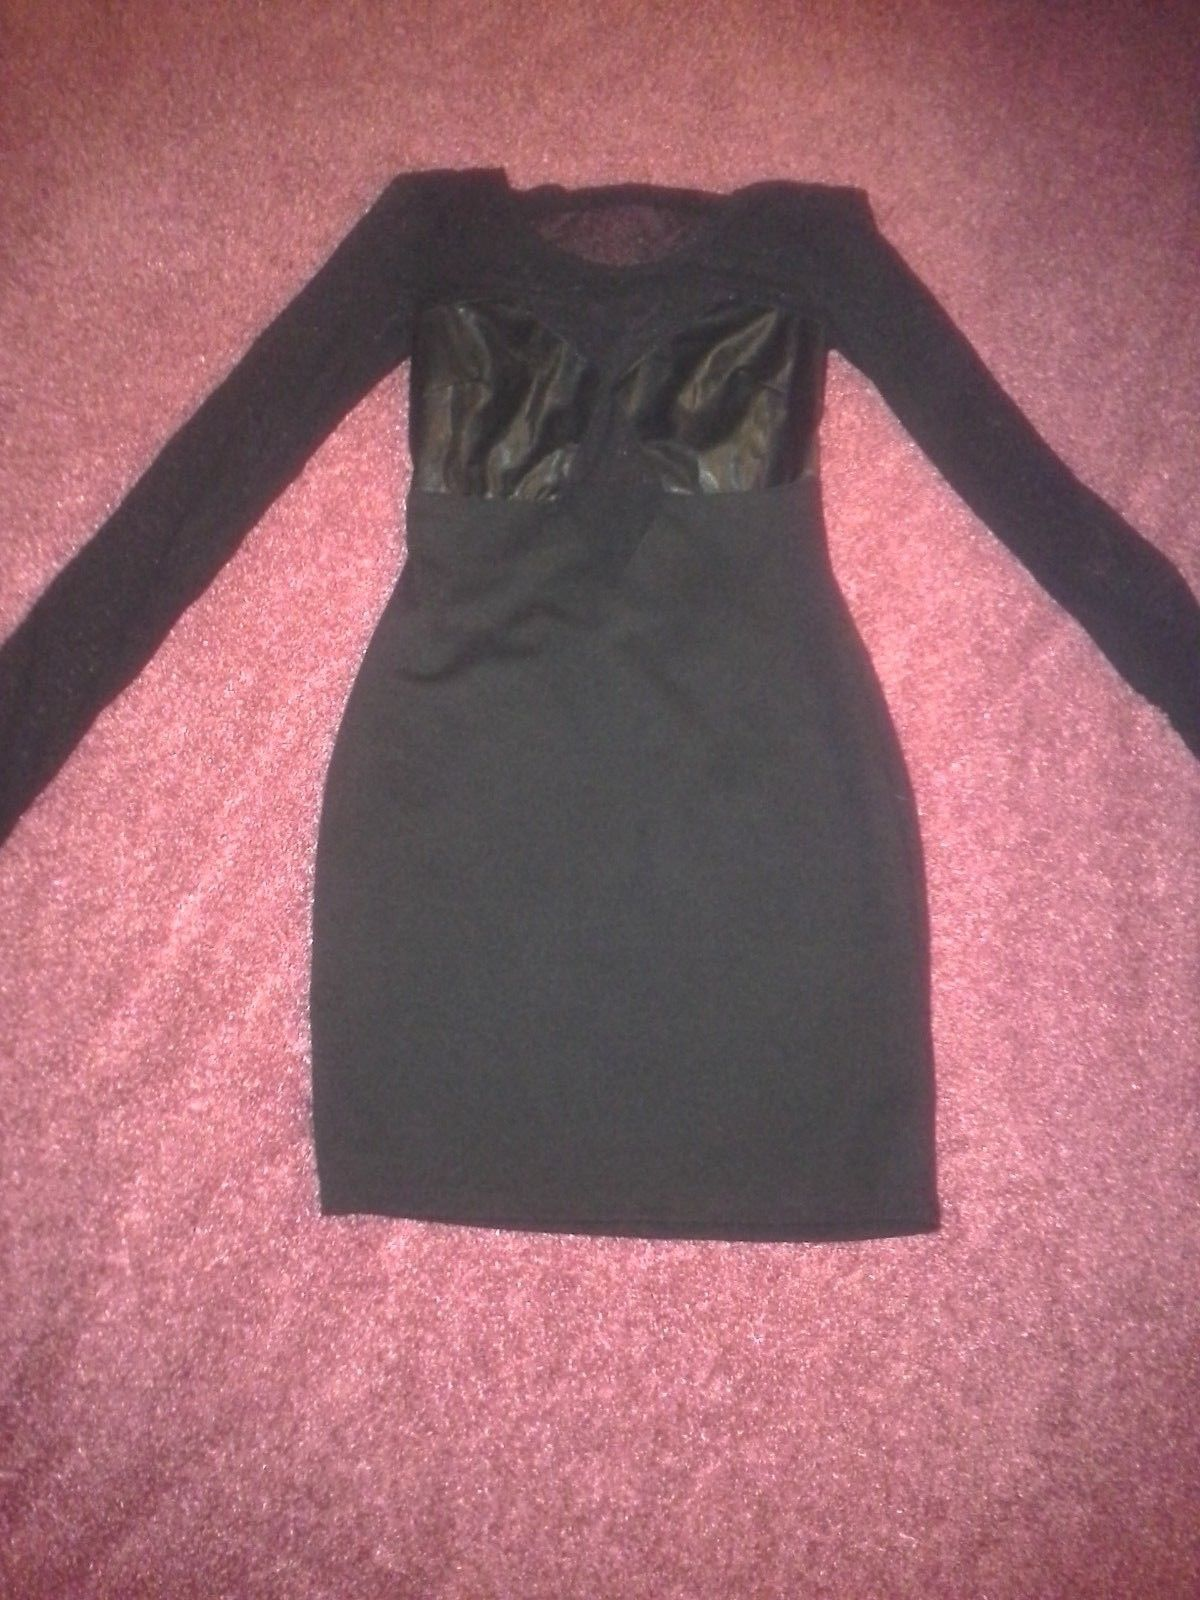 Primary image for Hottie-Women's-Black-Leather-Mesh-Long Sleeve-Stretch-Dress-Size:Small/Chico